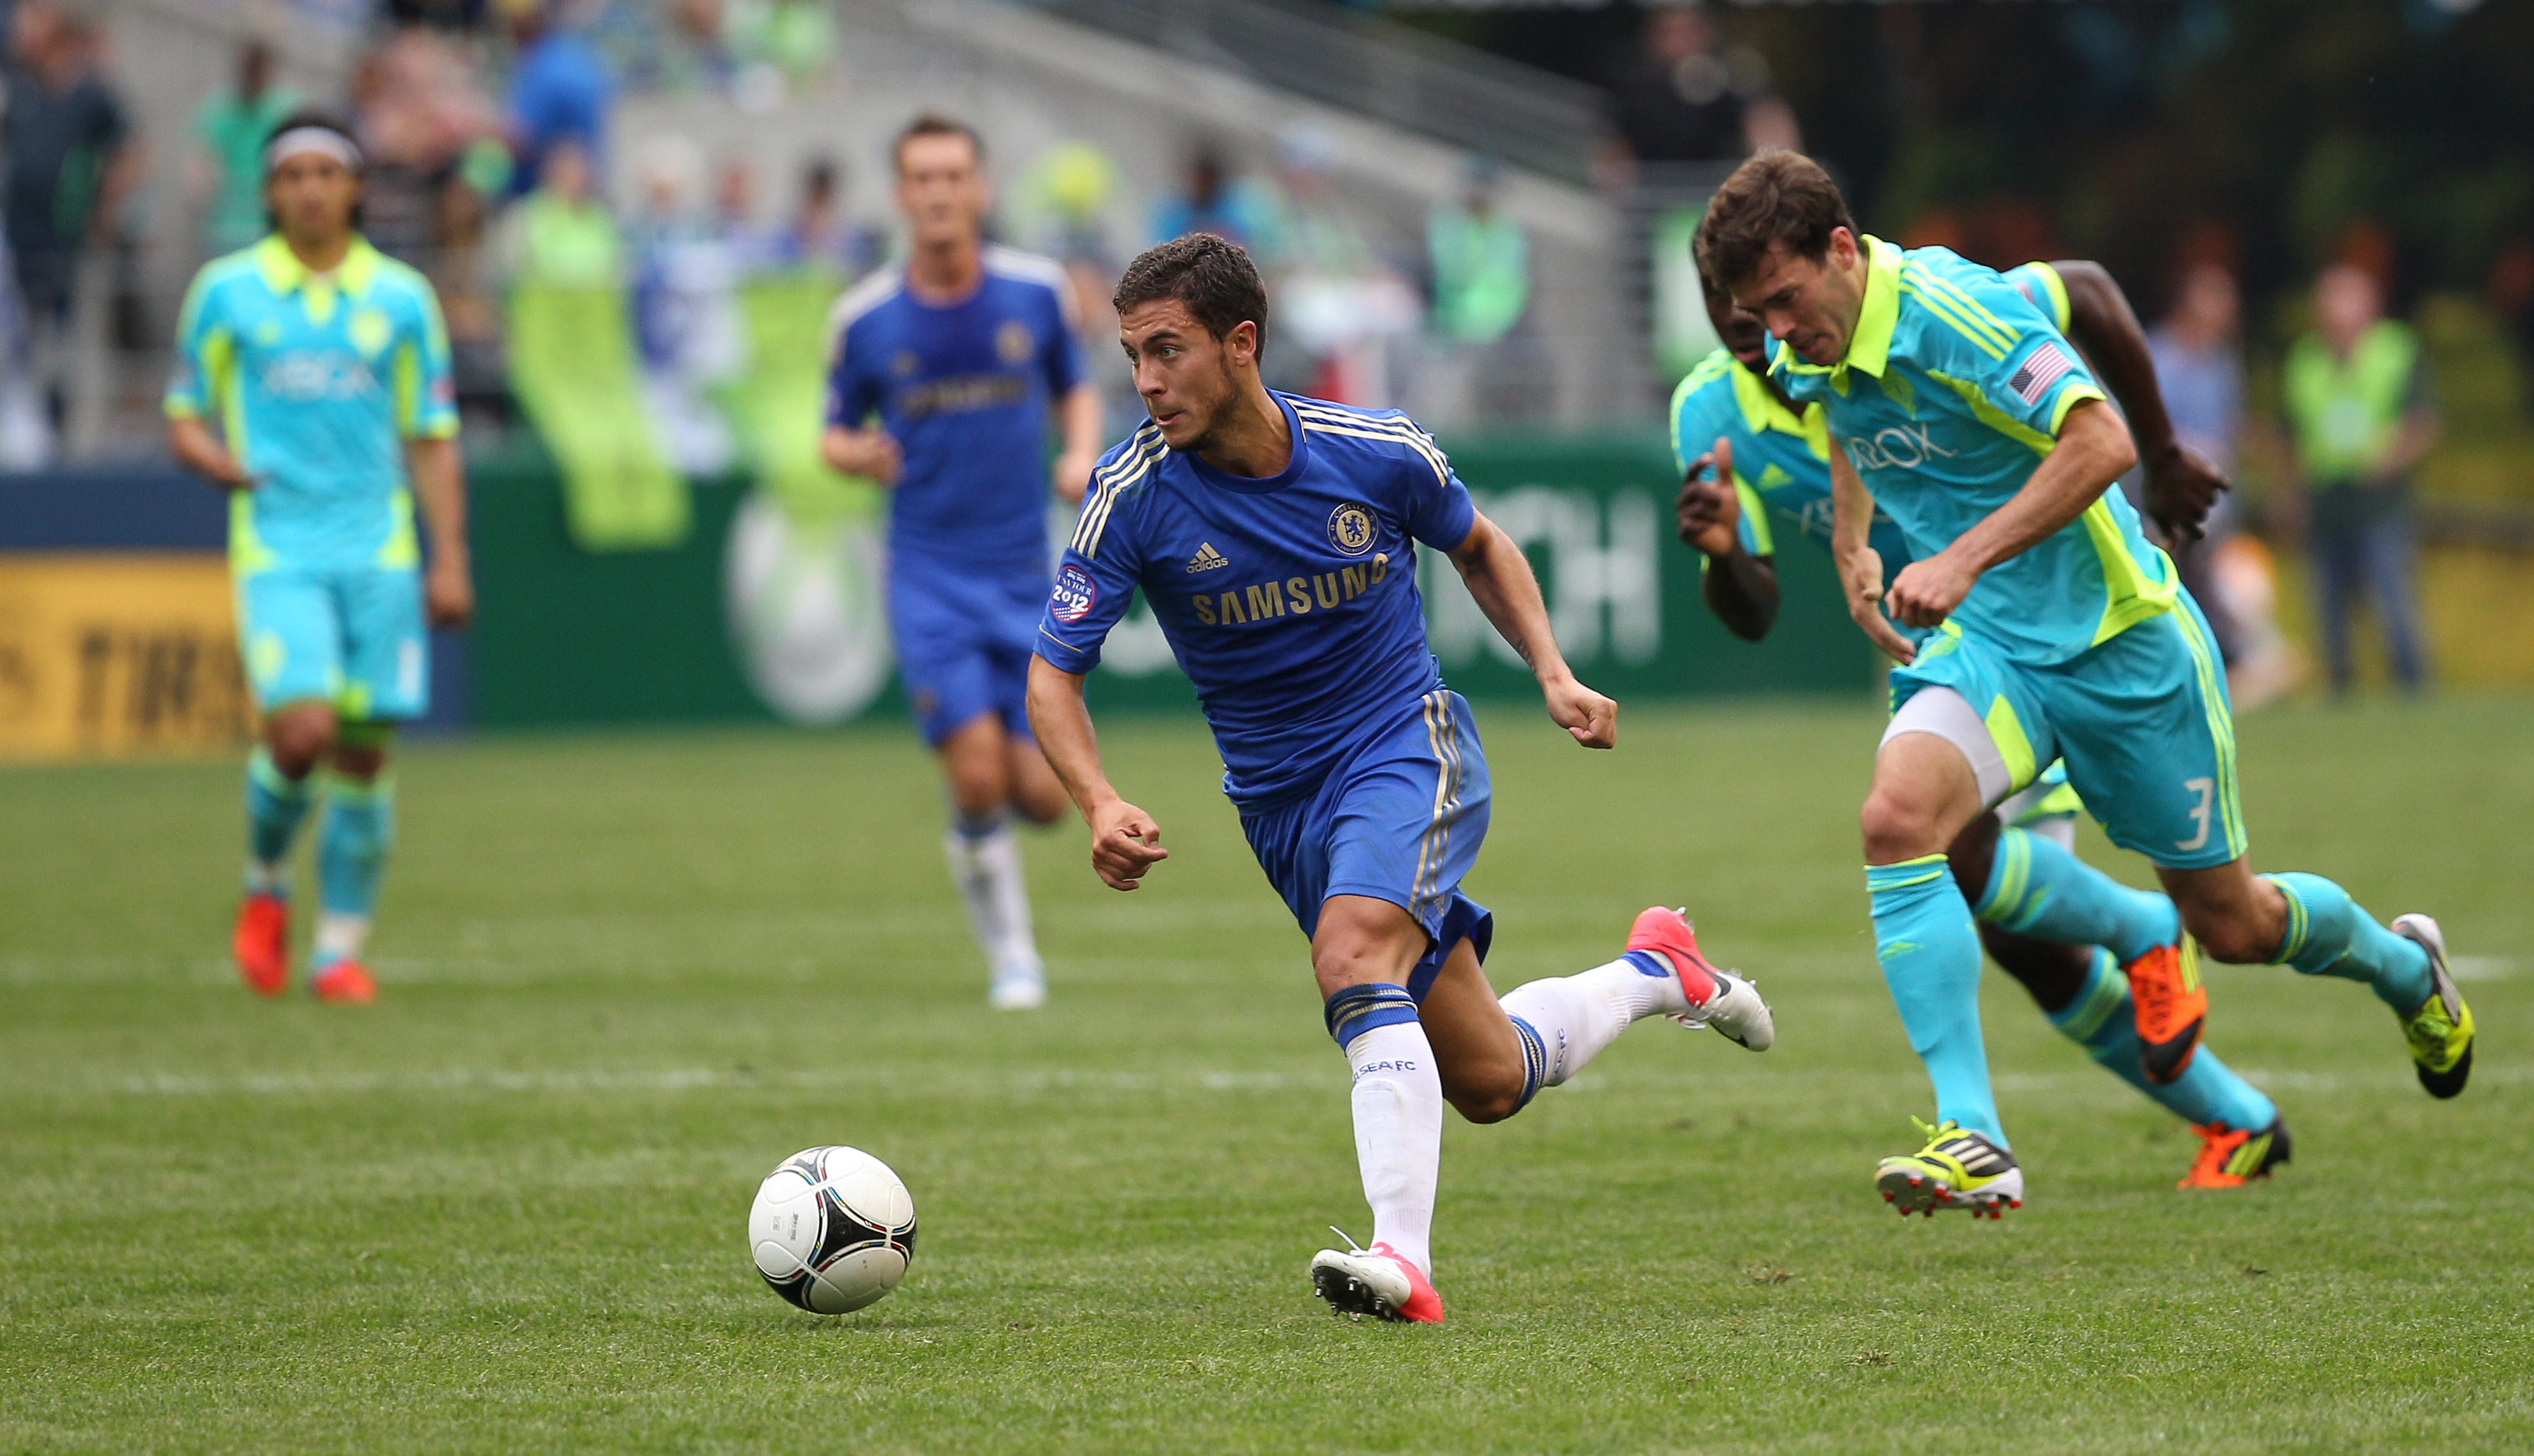 SEATTLE, WA - JULY 18:  Eden Hazard #17 of Chelsea FC dribbles against Brad Evans #3 of the Seattle Sounders FC at CenturyLink Field on July 18, 2012 in Seattle, Washington. Chelsea defeated the Sounders 4-2.  (Photo by Otto Greule Jr/Getty Images)